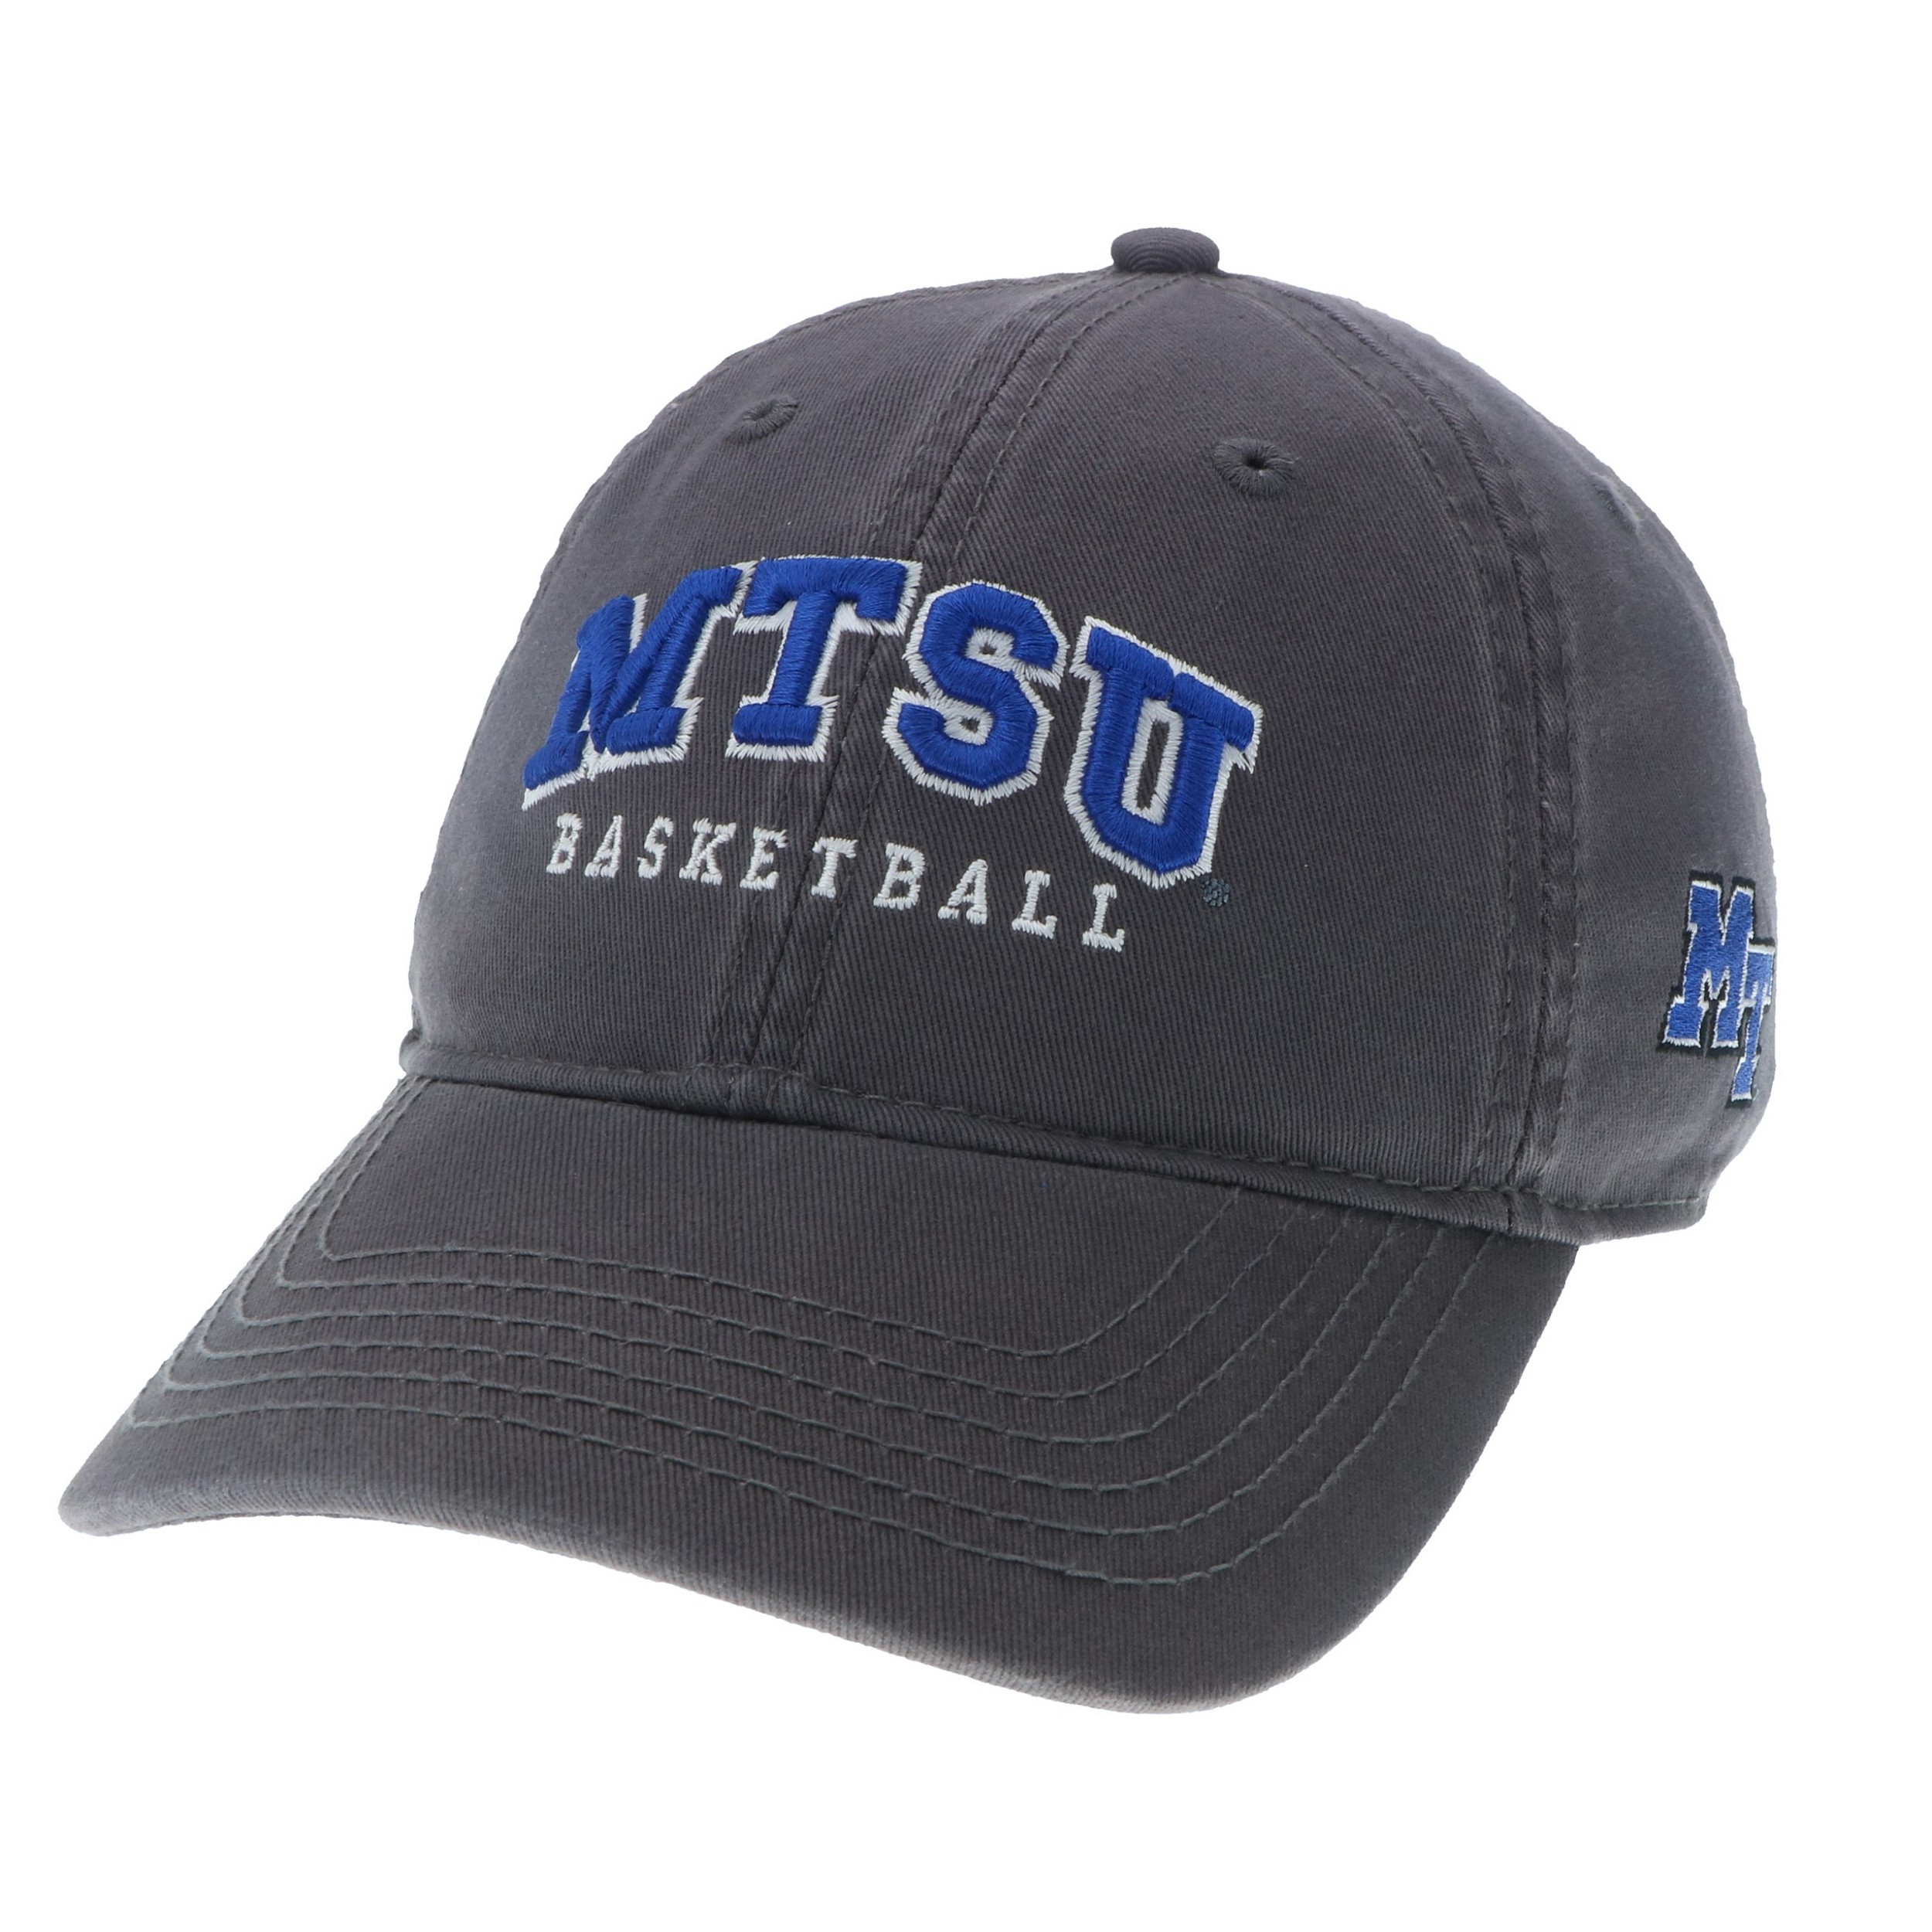 MTSU Basketball Arch Relaxed Twill Hat